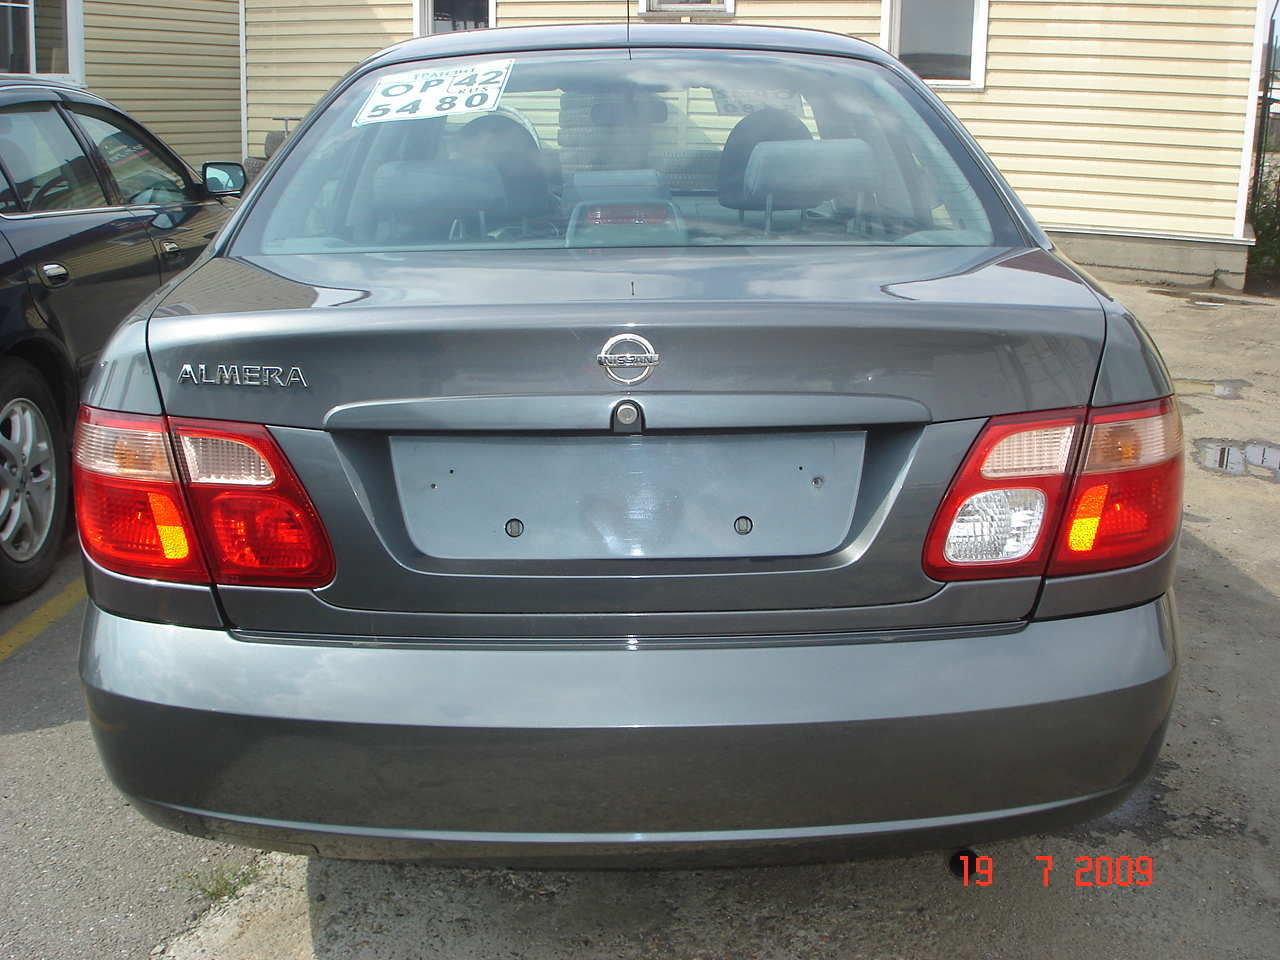 2004 nissan almera for sale 1500cc gasoline ff manual for sale. Black Bedroom Furniture Sets. Home Design Ideas